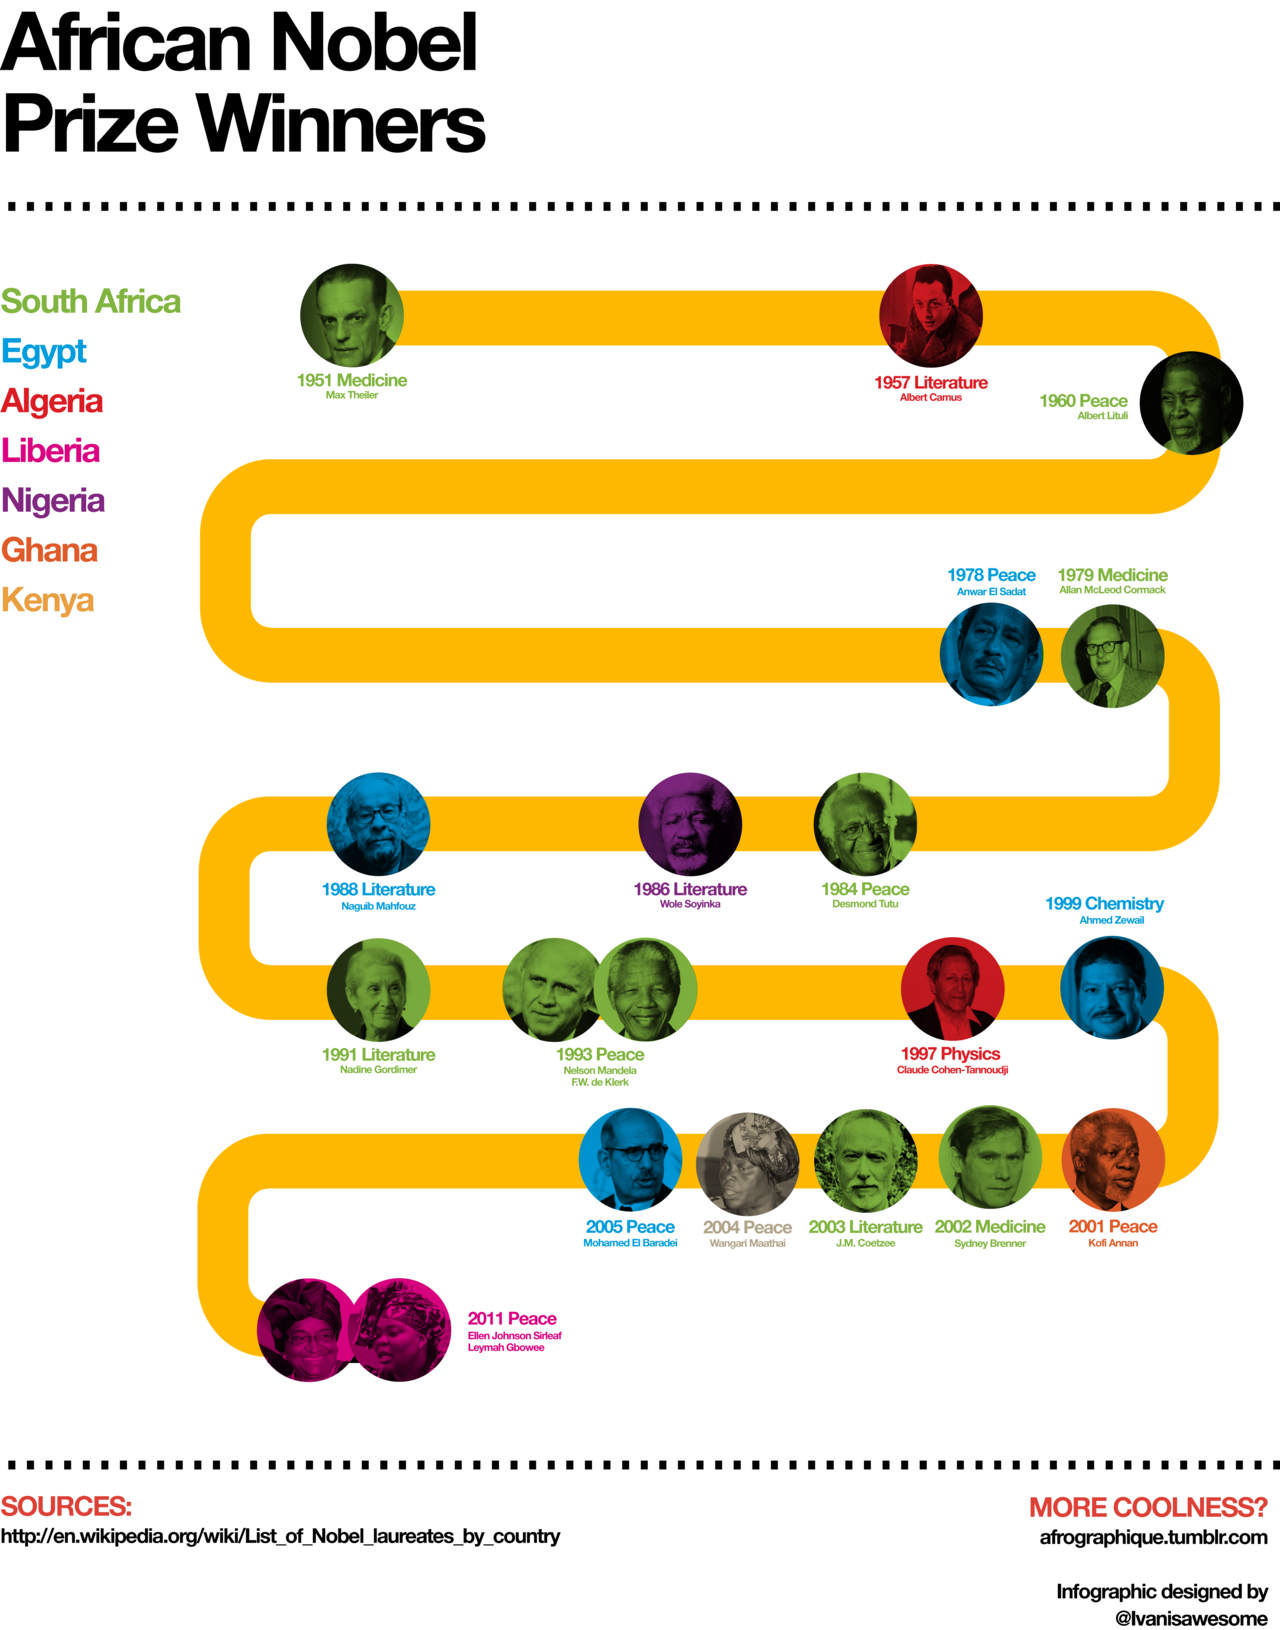 afrographique:  An infographic celebrating African Nobel Prize winners from across the continent.